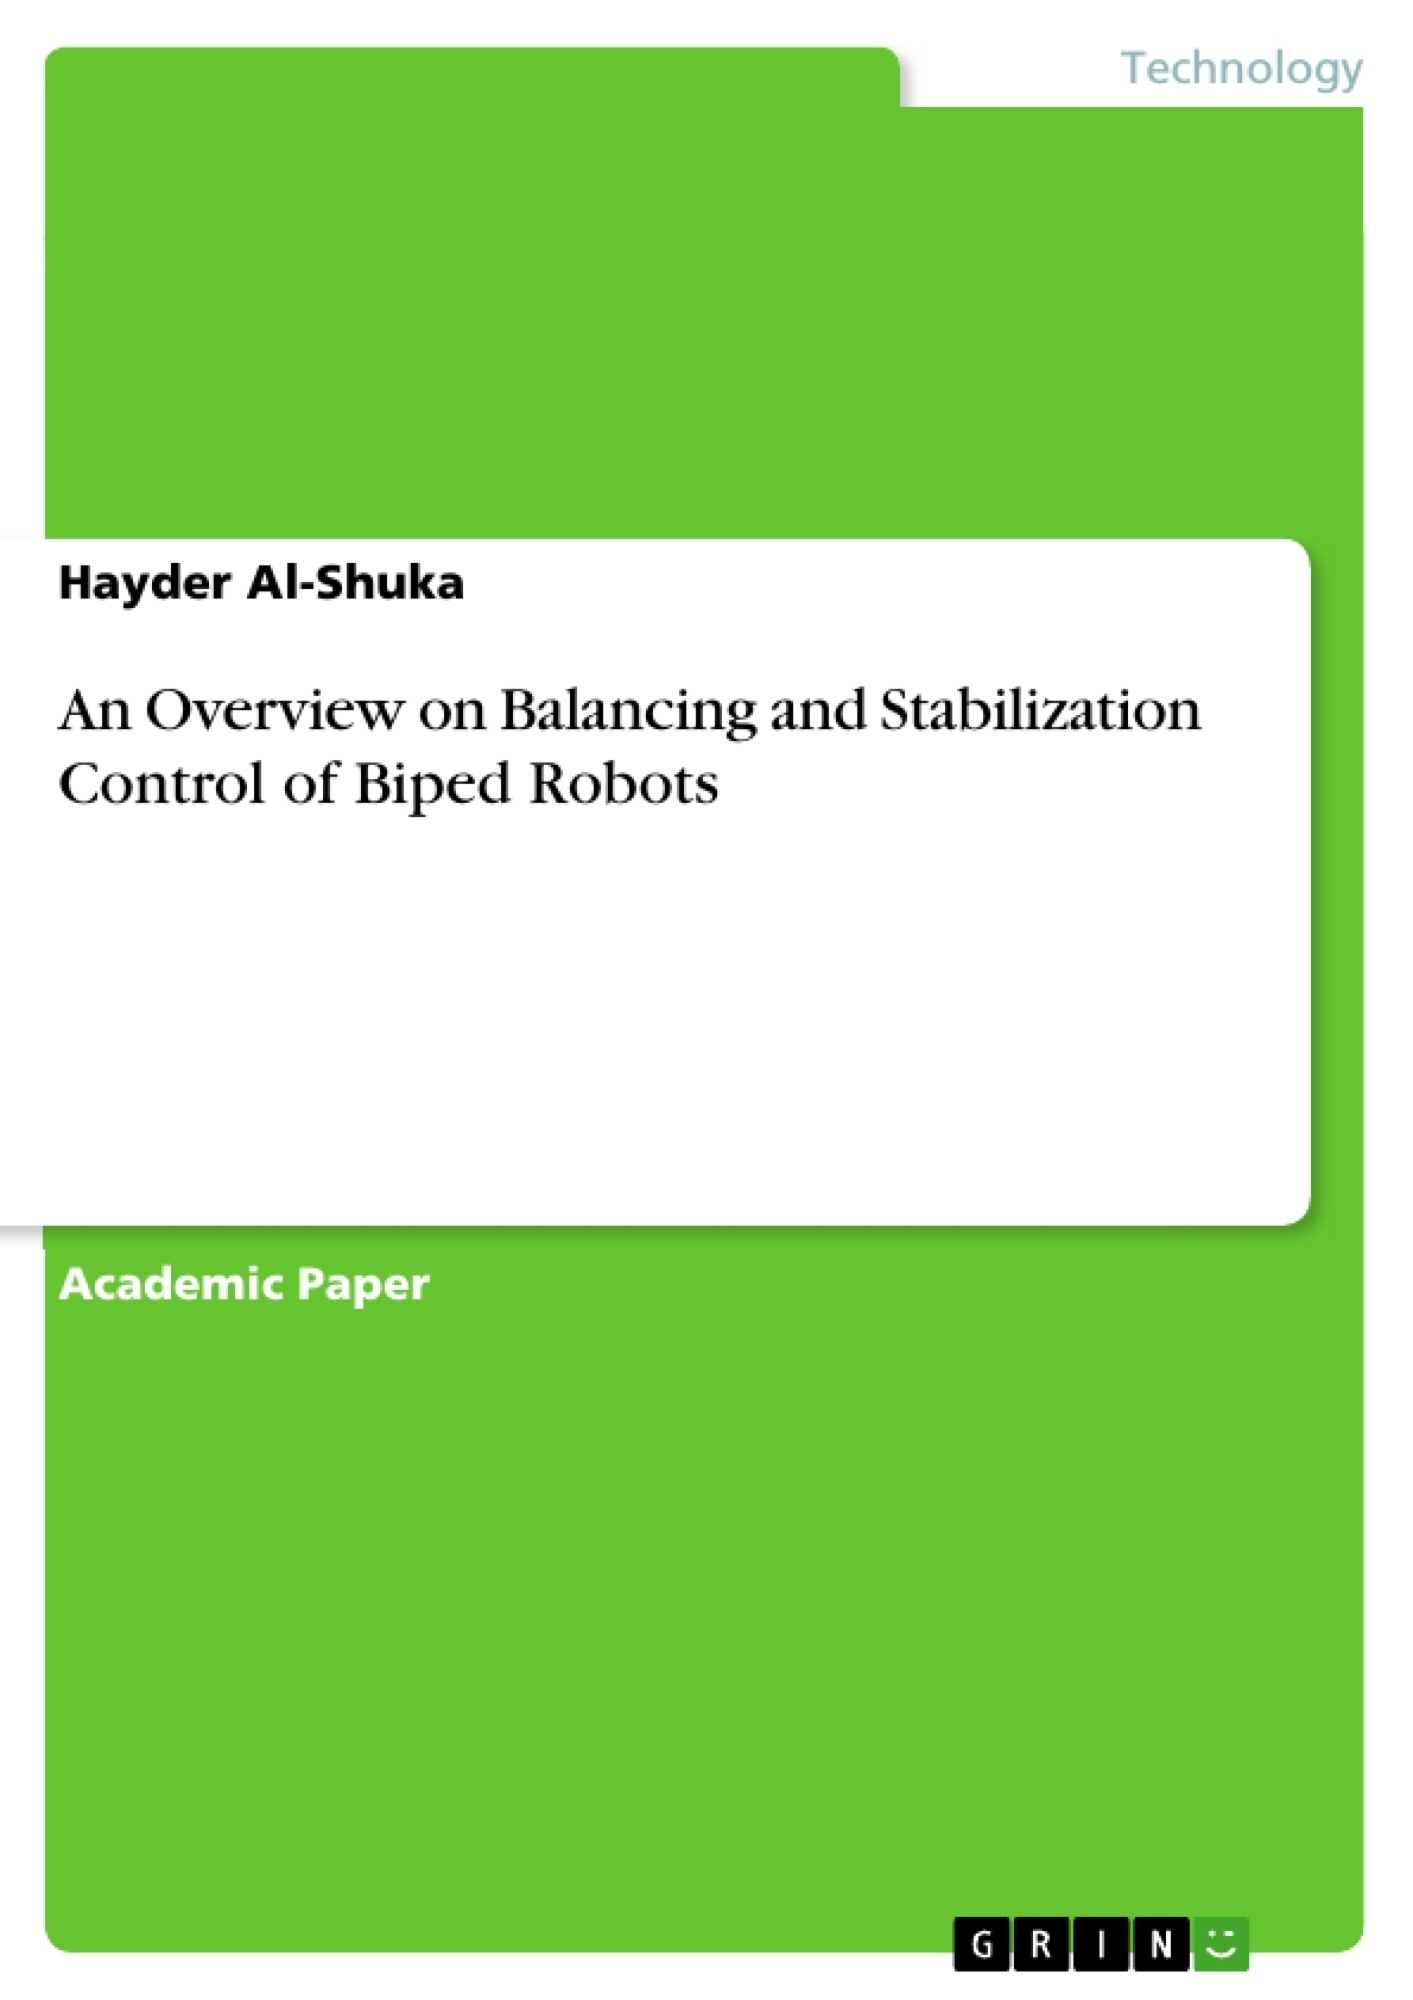 Title: An Overview on Balancing and Stabilization Control of Biped Robots